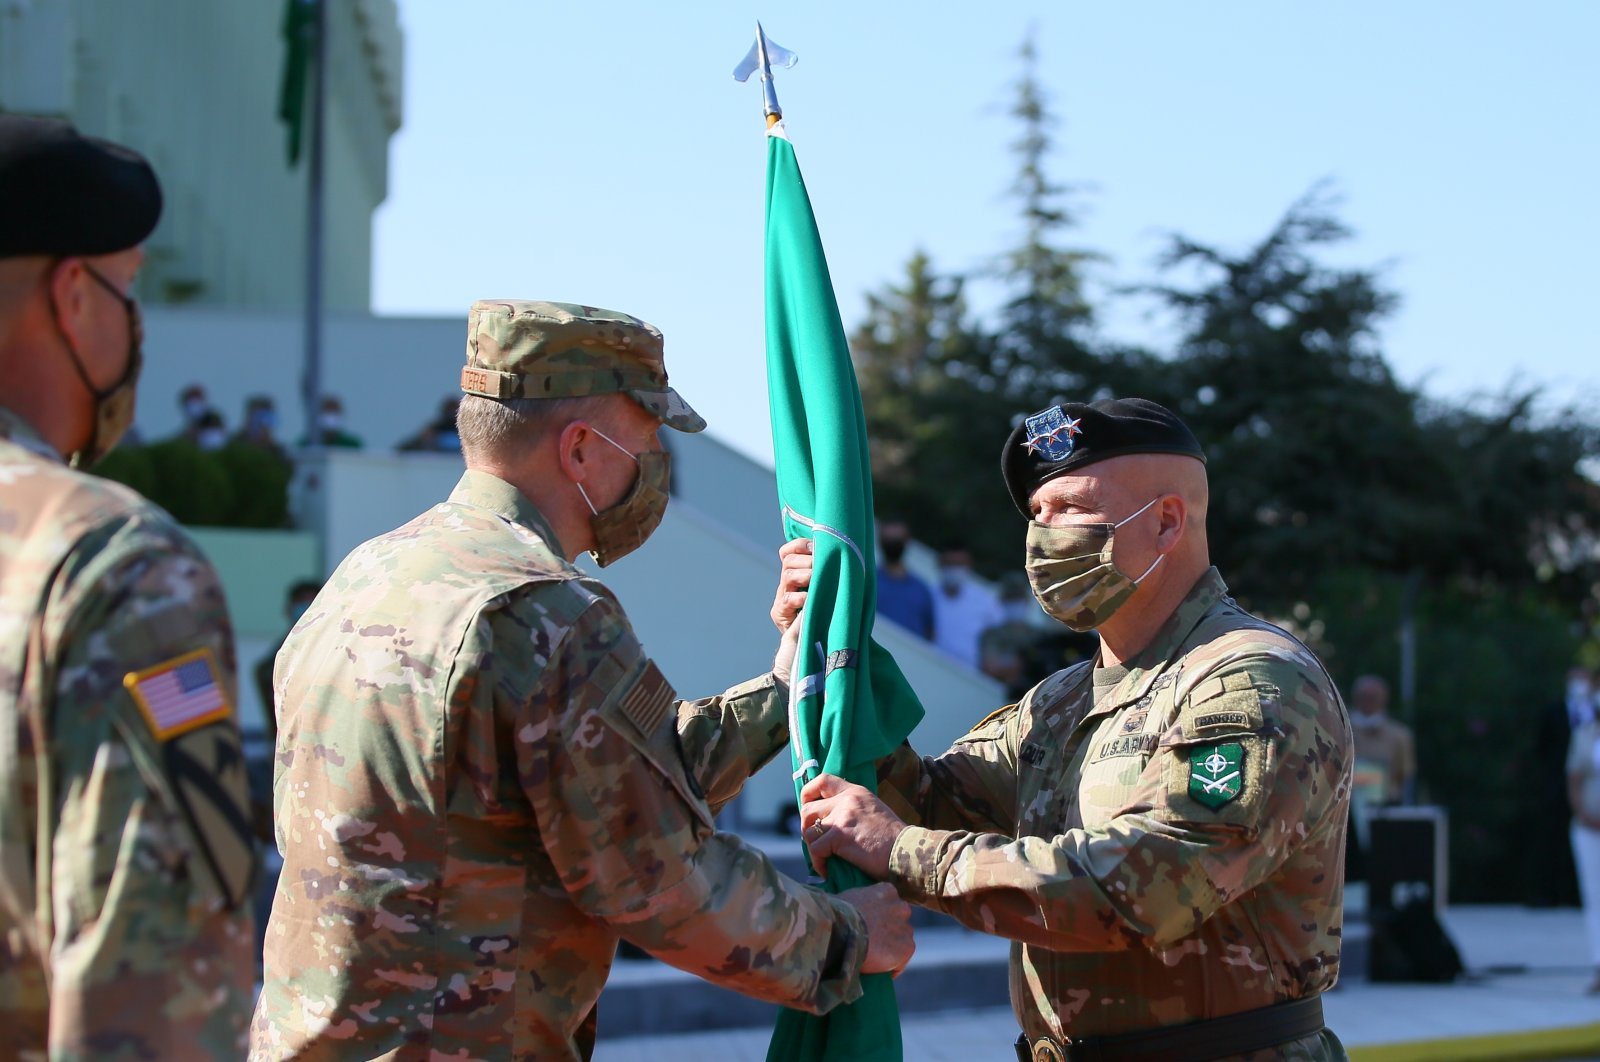 Lt. Gen. Roger L. Cloutier (R) on Tuesday assumed command of the NATO Allied Land Command from Lt. Gen. John T. Thomson (L) at a ceremony held in southwestern Turkey's Izmir, Aug. 4, 2020 (AA Photo)